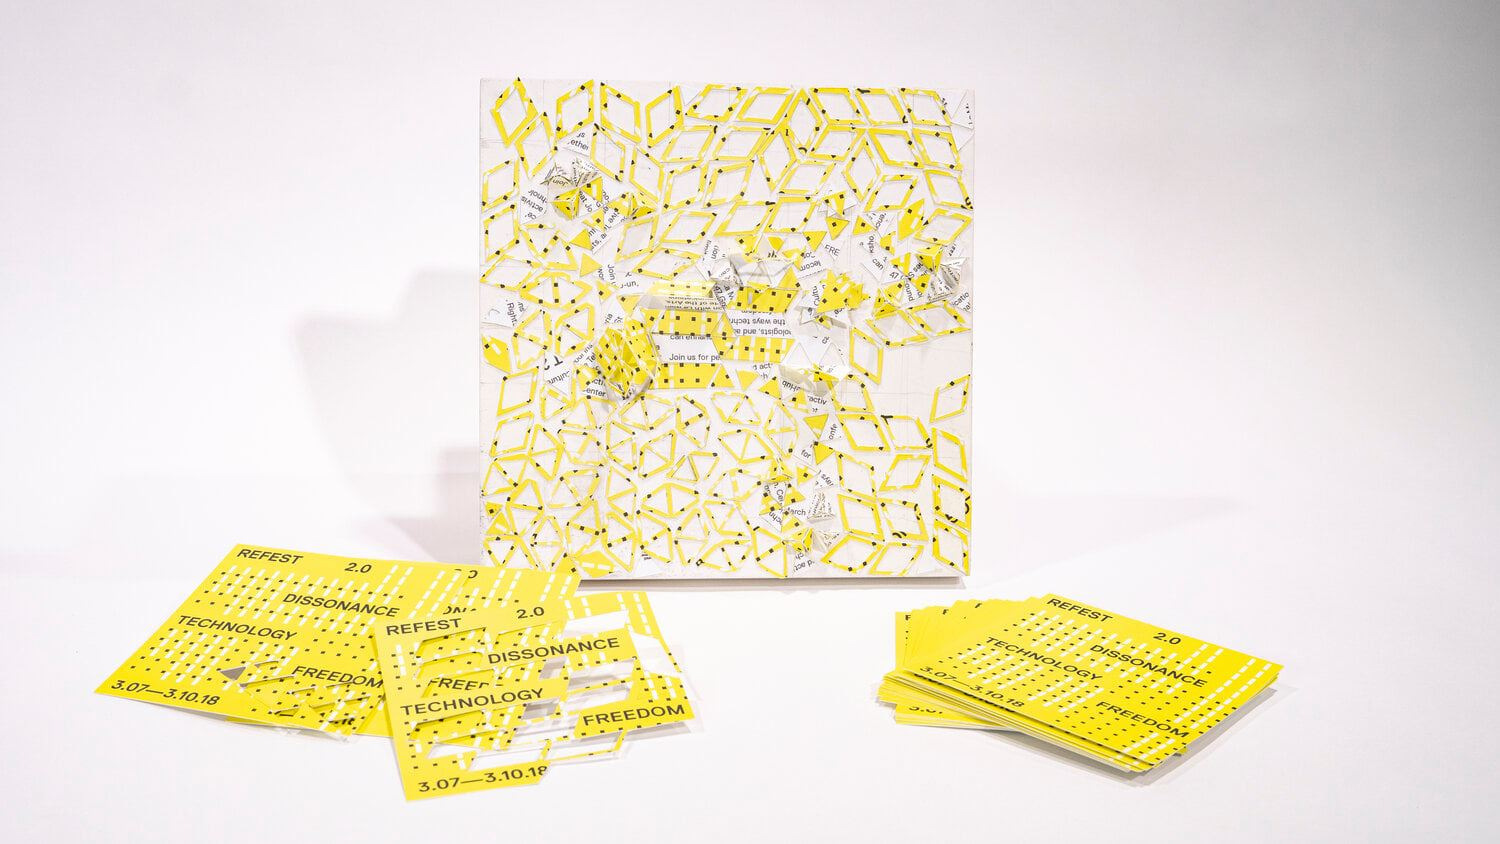 yellow postcards on a white surface and a small square where the cards have been torn and pasted into a collage